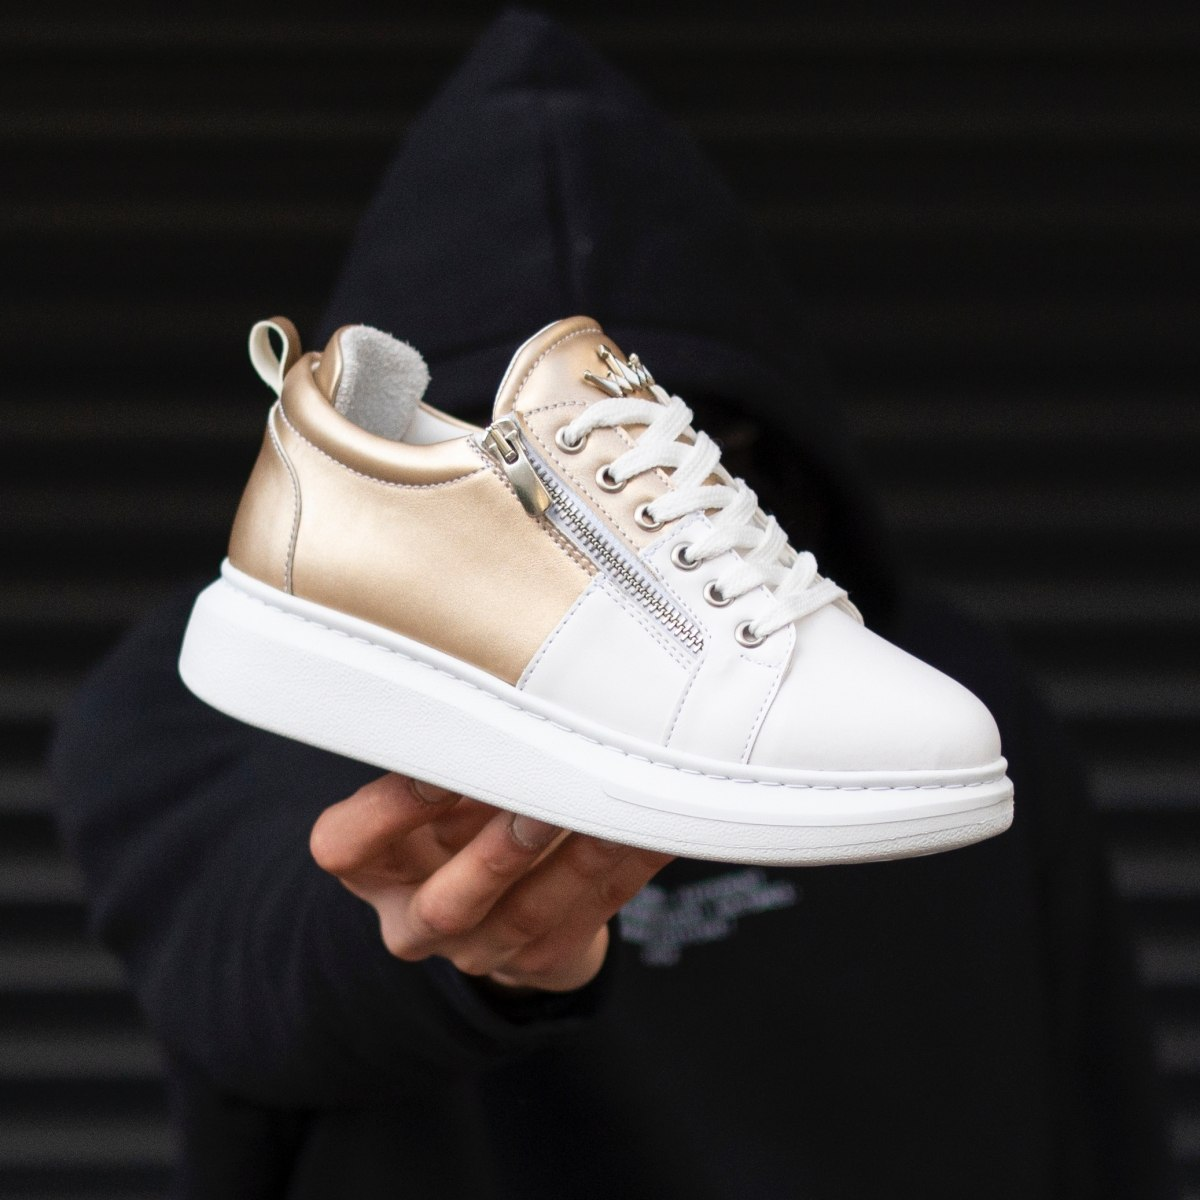 Woman Hype Sole Zipped Style Sneakers In Gold-White